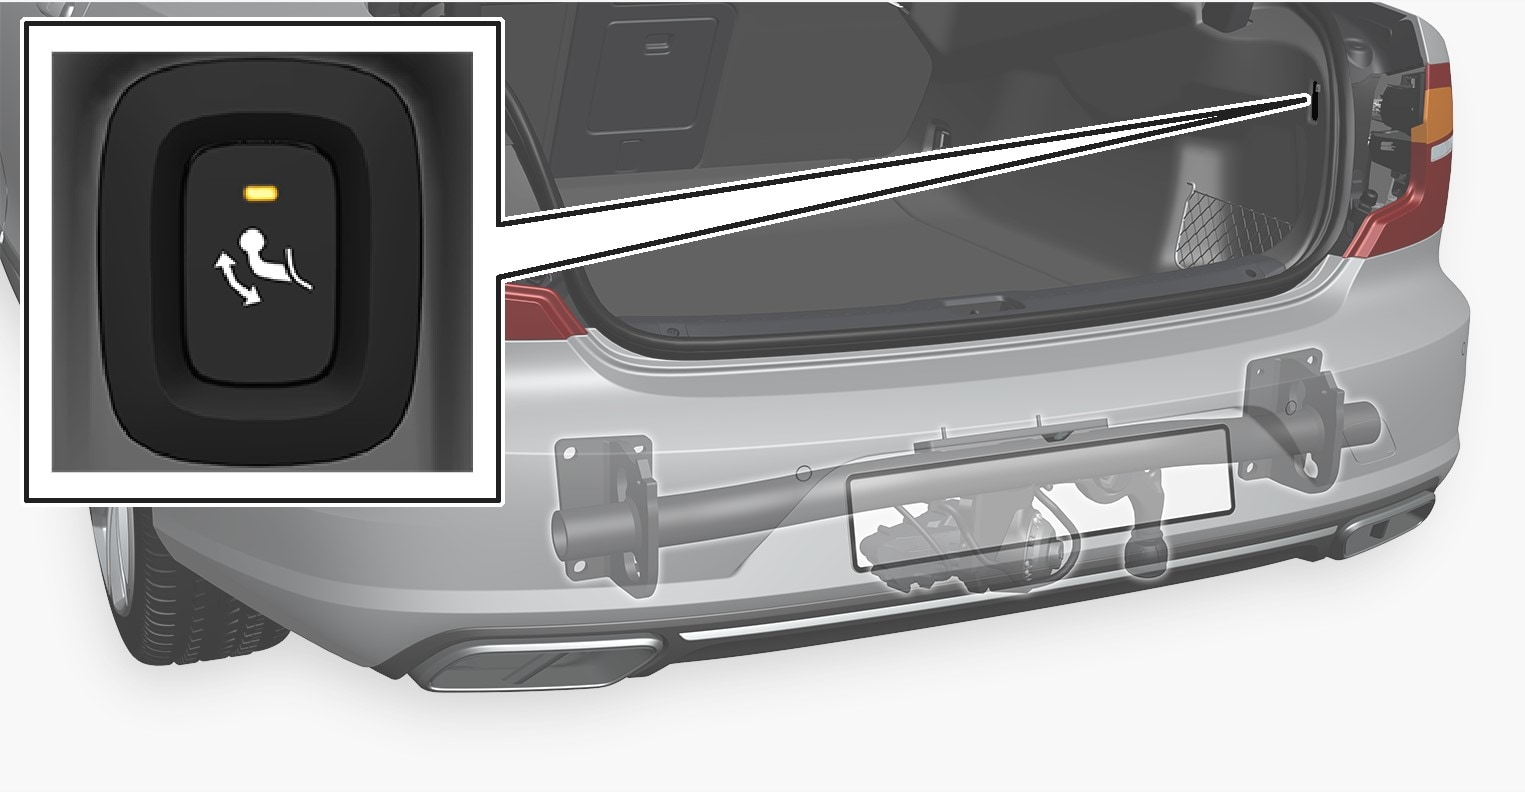 P5-1617-S90-Swivable towbar and switch foldout step 1